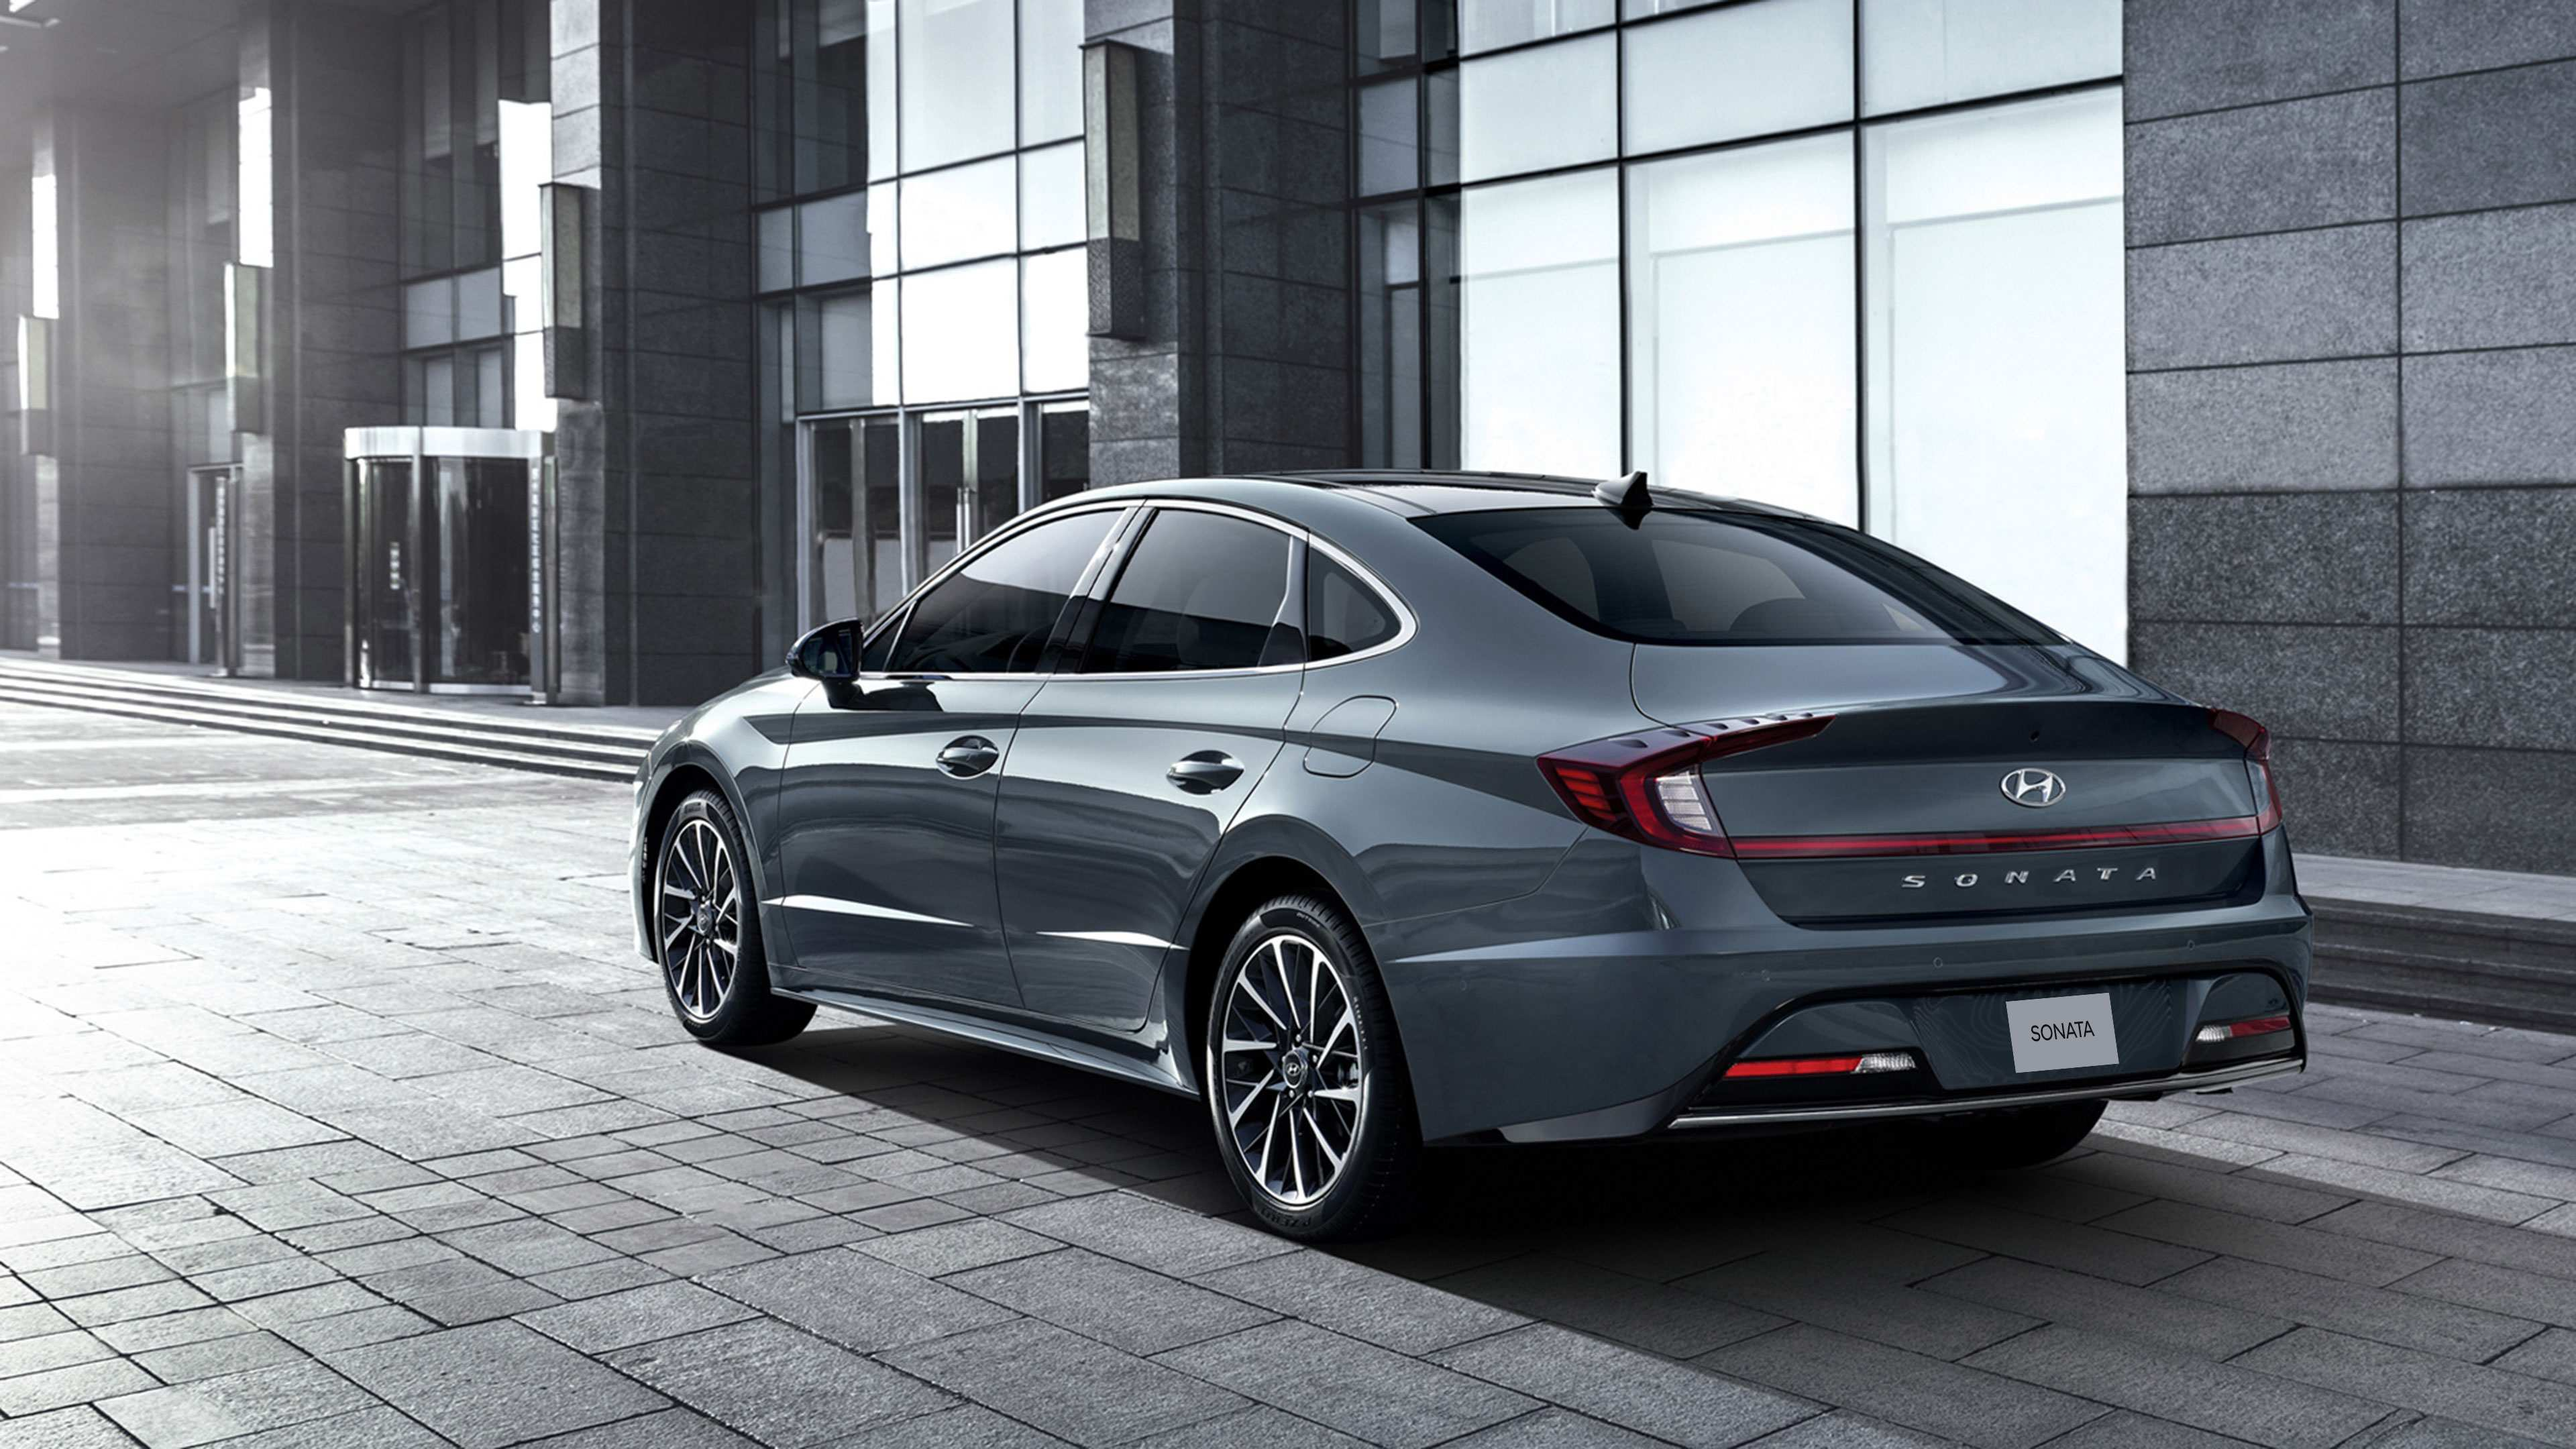 58 New Price Of 2020 Hyundai Sonata Redesign And Concept